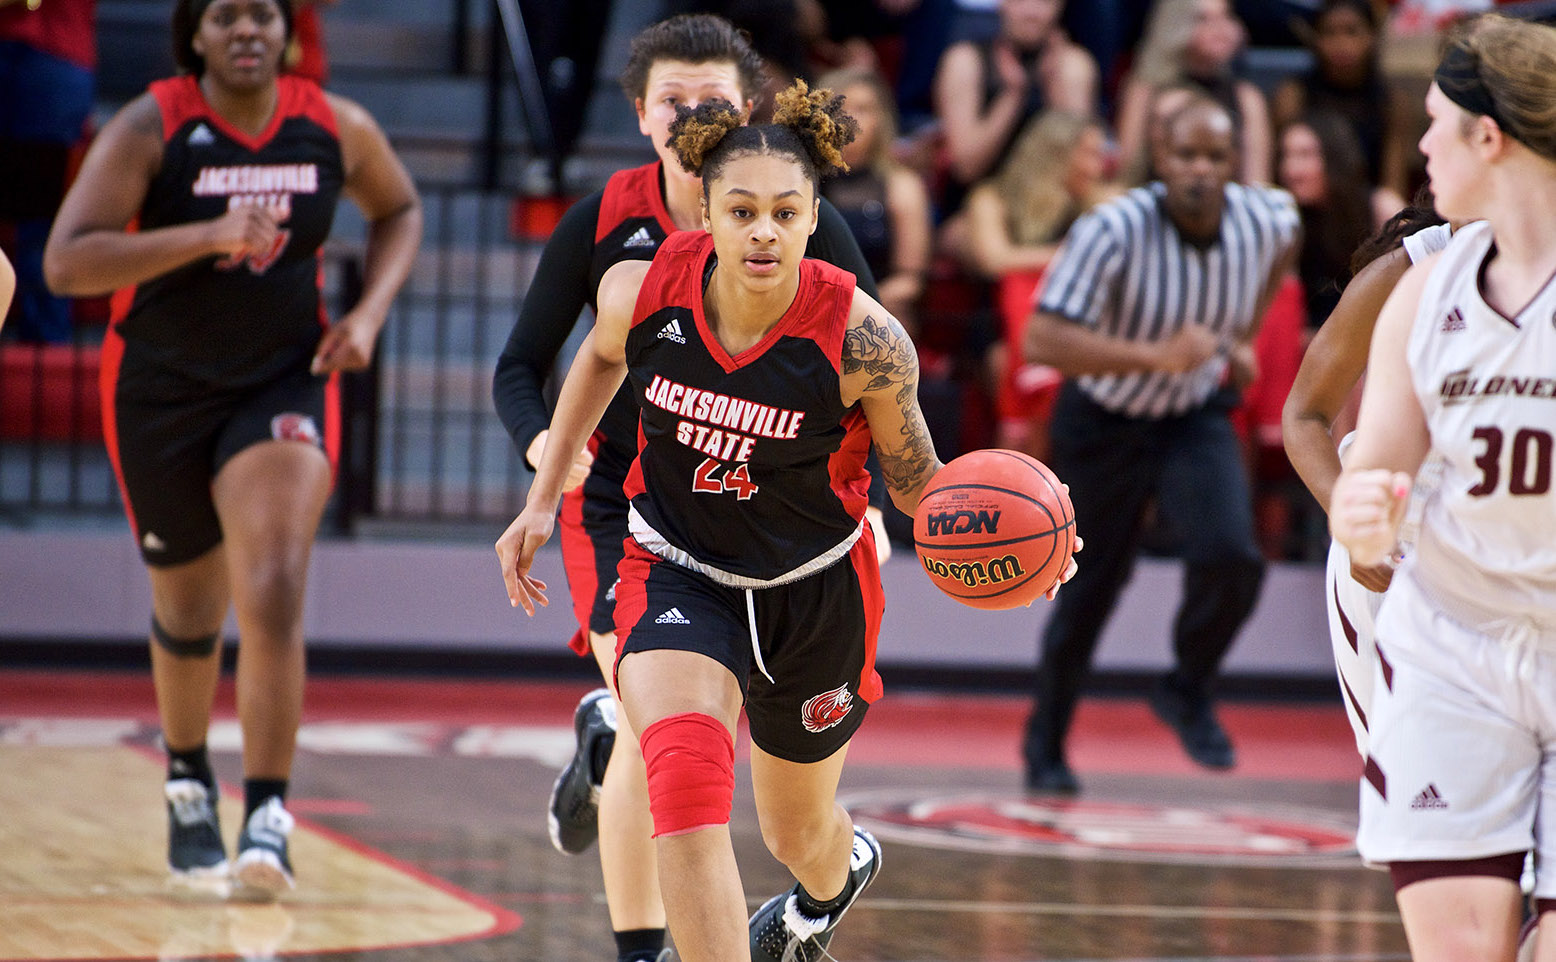 Female basketball player in Jacksonville State University uniforms dribbles basketball down court at a basketball game. Several other players can be seen in the background, none in focus.